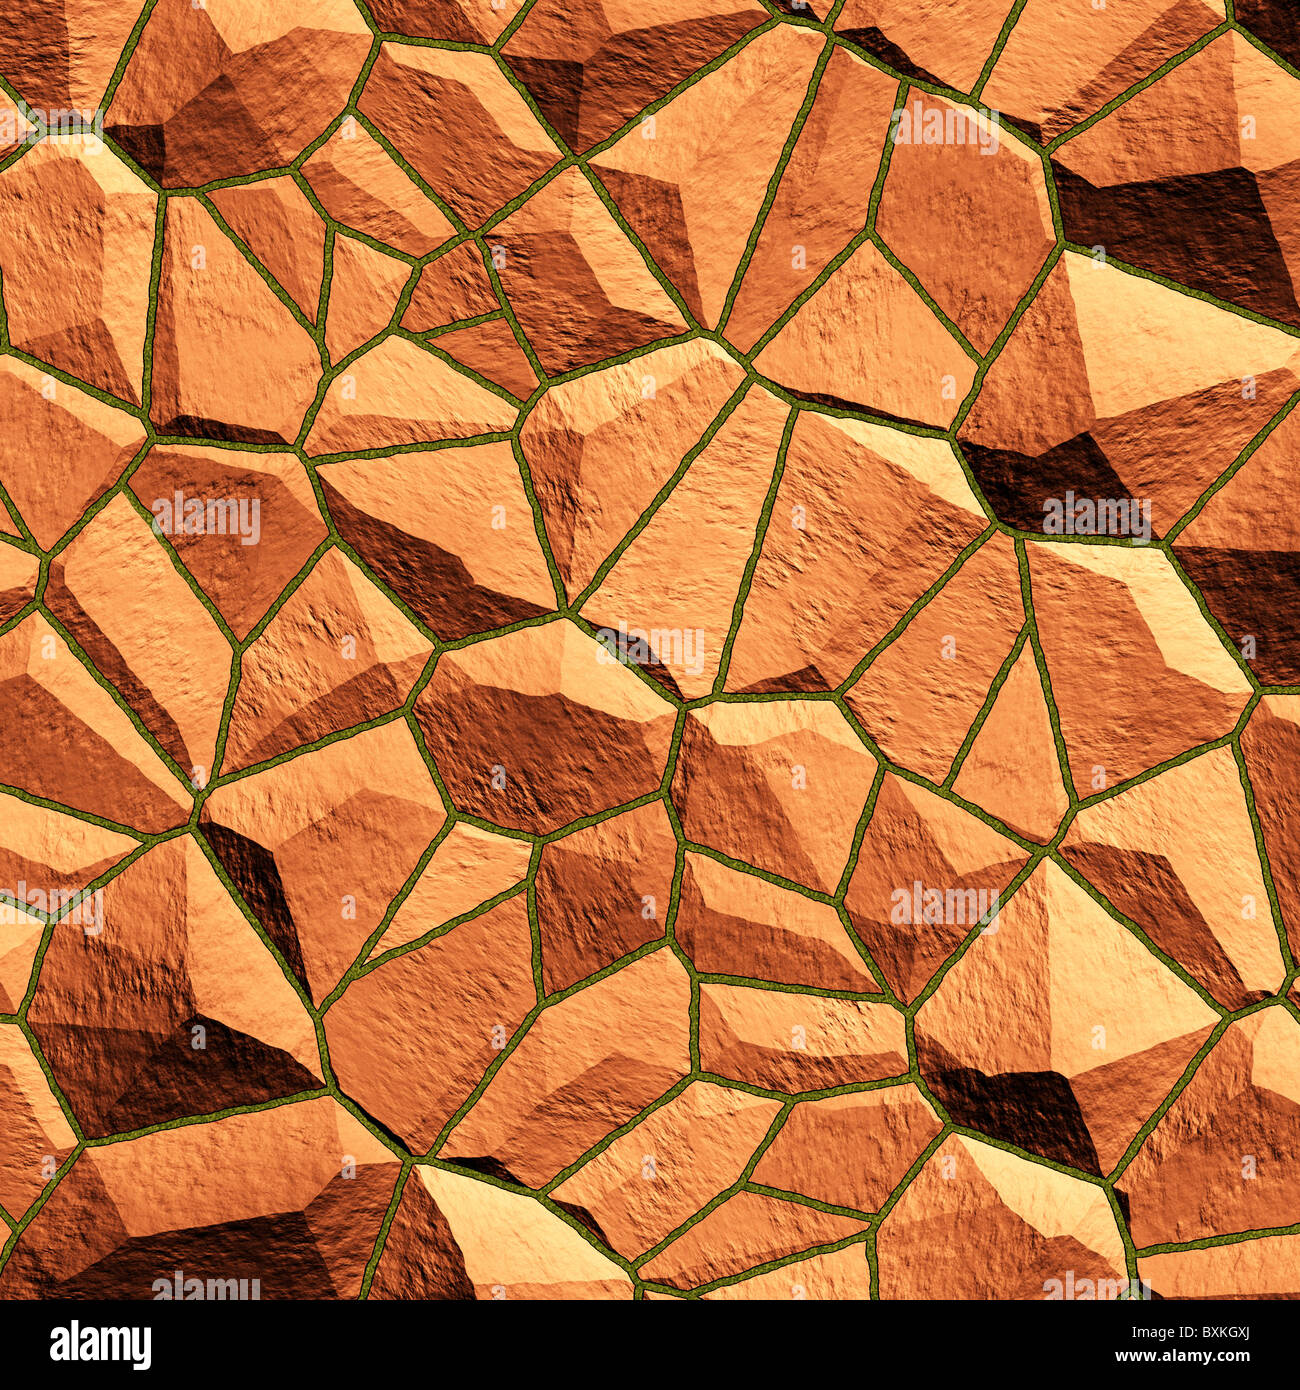 Abstract generated stone surface for background and design - Stock Image